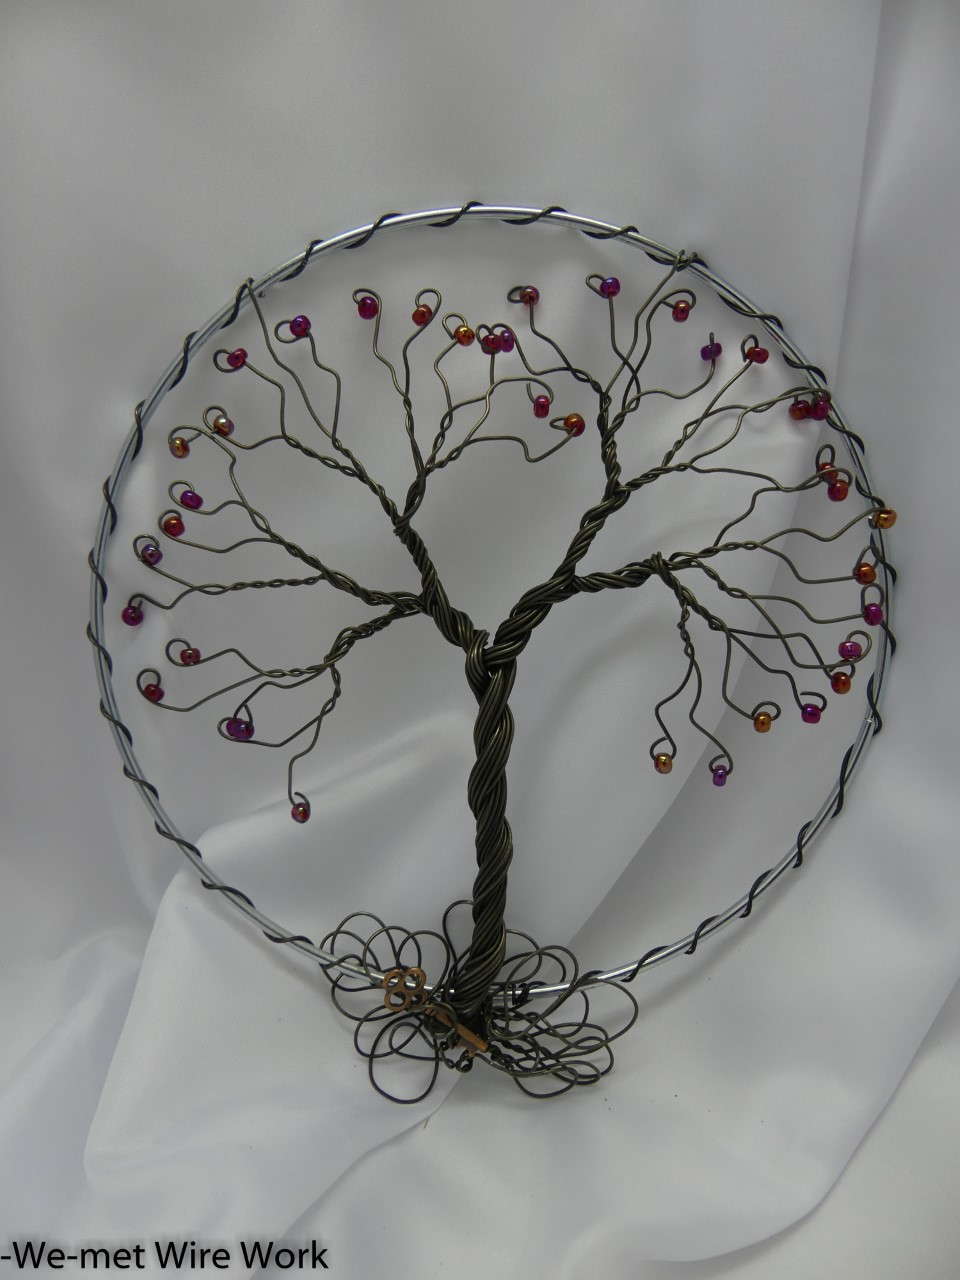 Indigo Presents: Wire Art - Tree of Life